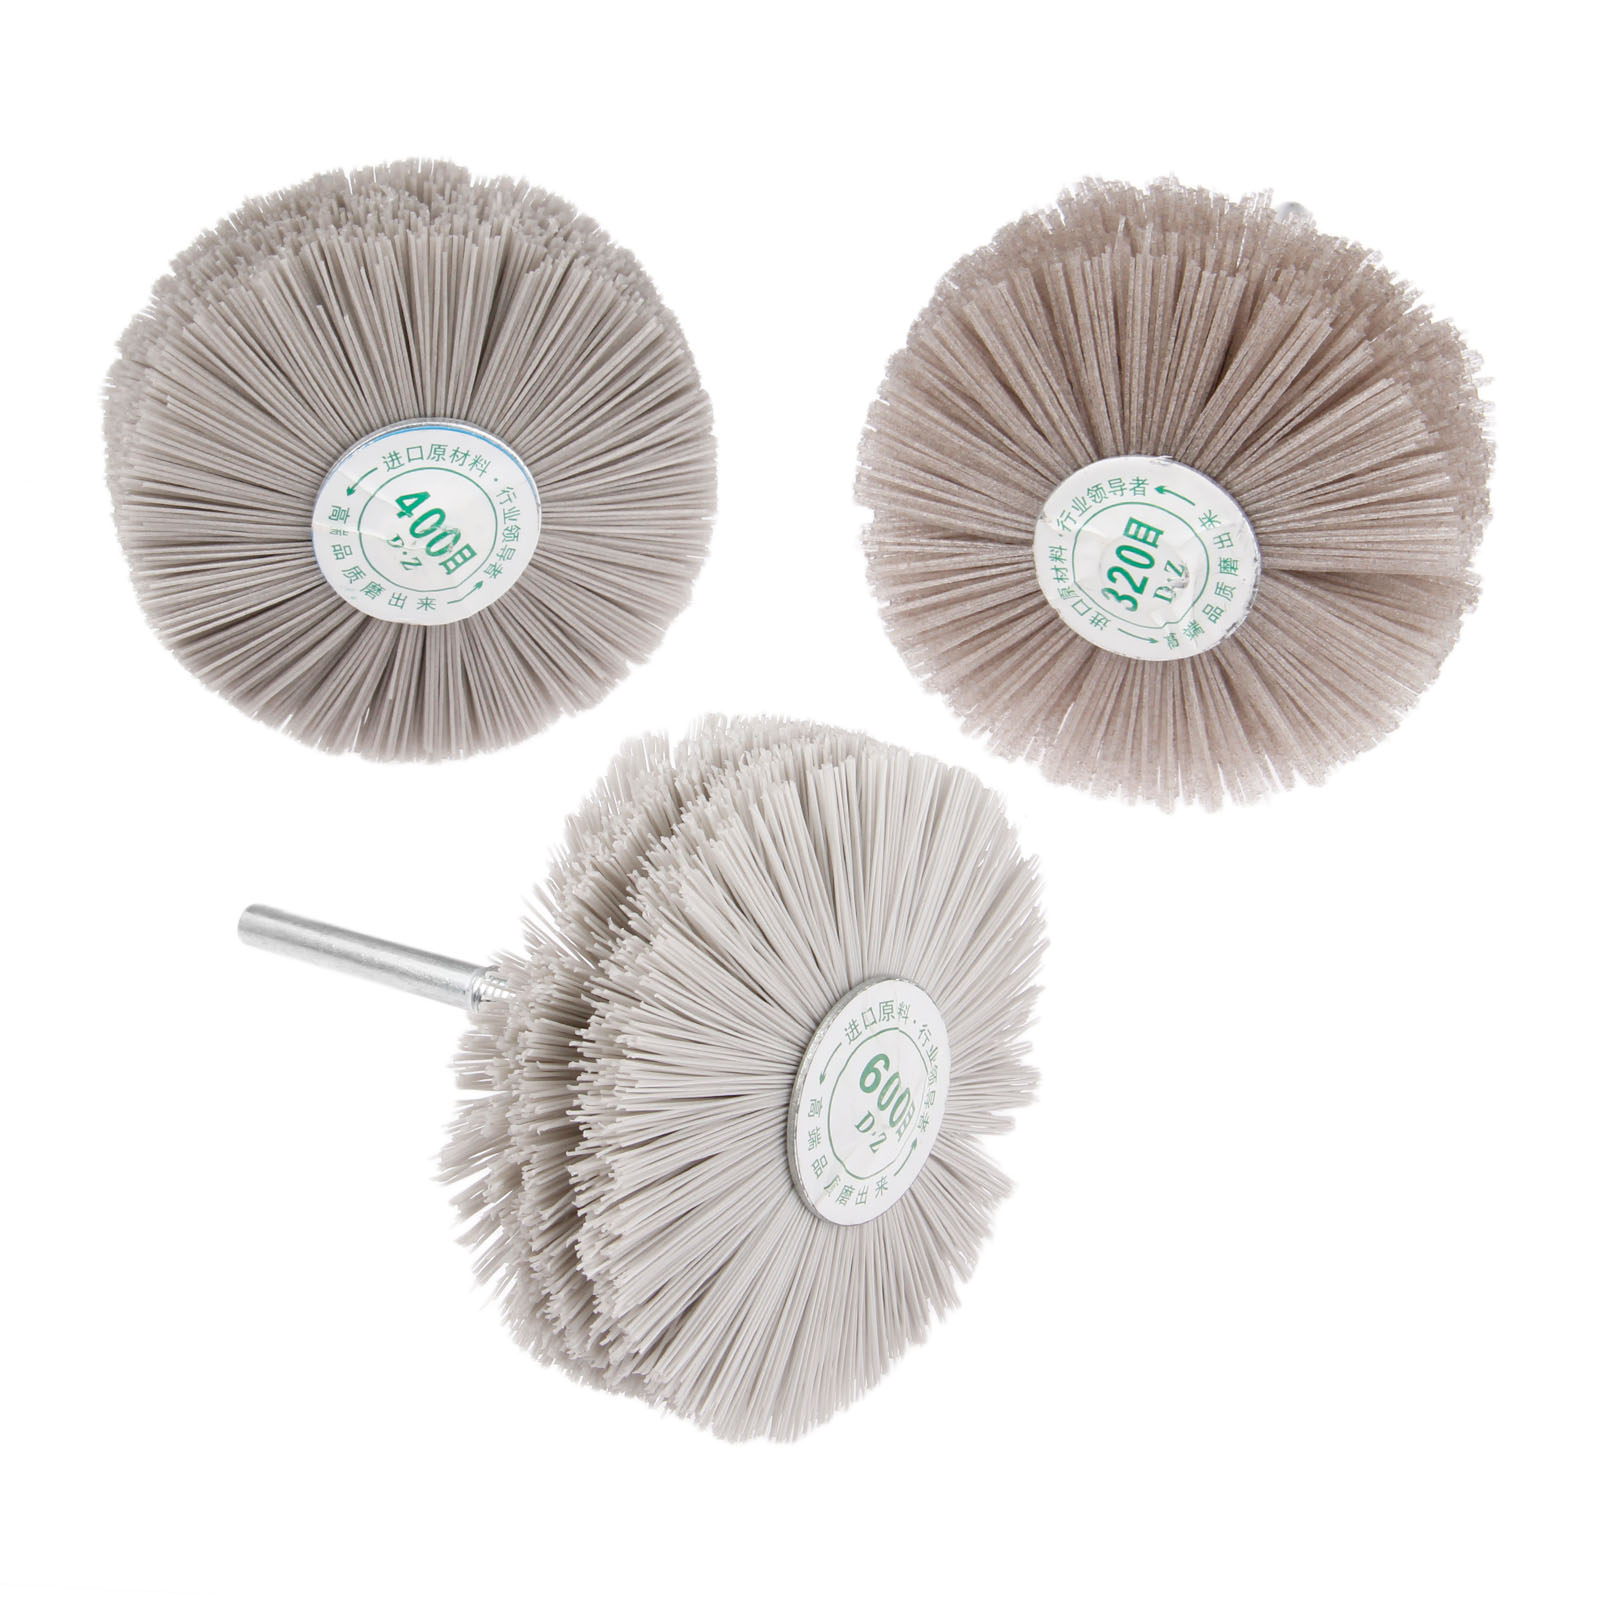 DRELD 3Pcs Dremel Accessories Nylon Wheel Brush Wood Metal Polishing Buffing Grinding Wheel 320 400 600 for Drill Rotary Tool in Abrasive Tools from Tools